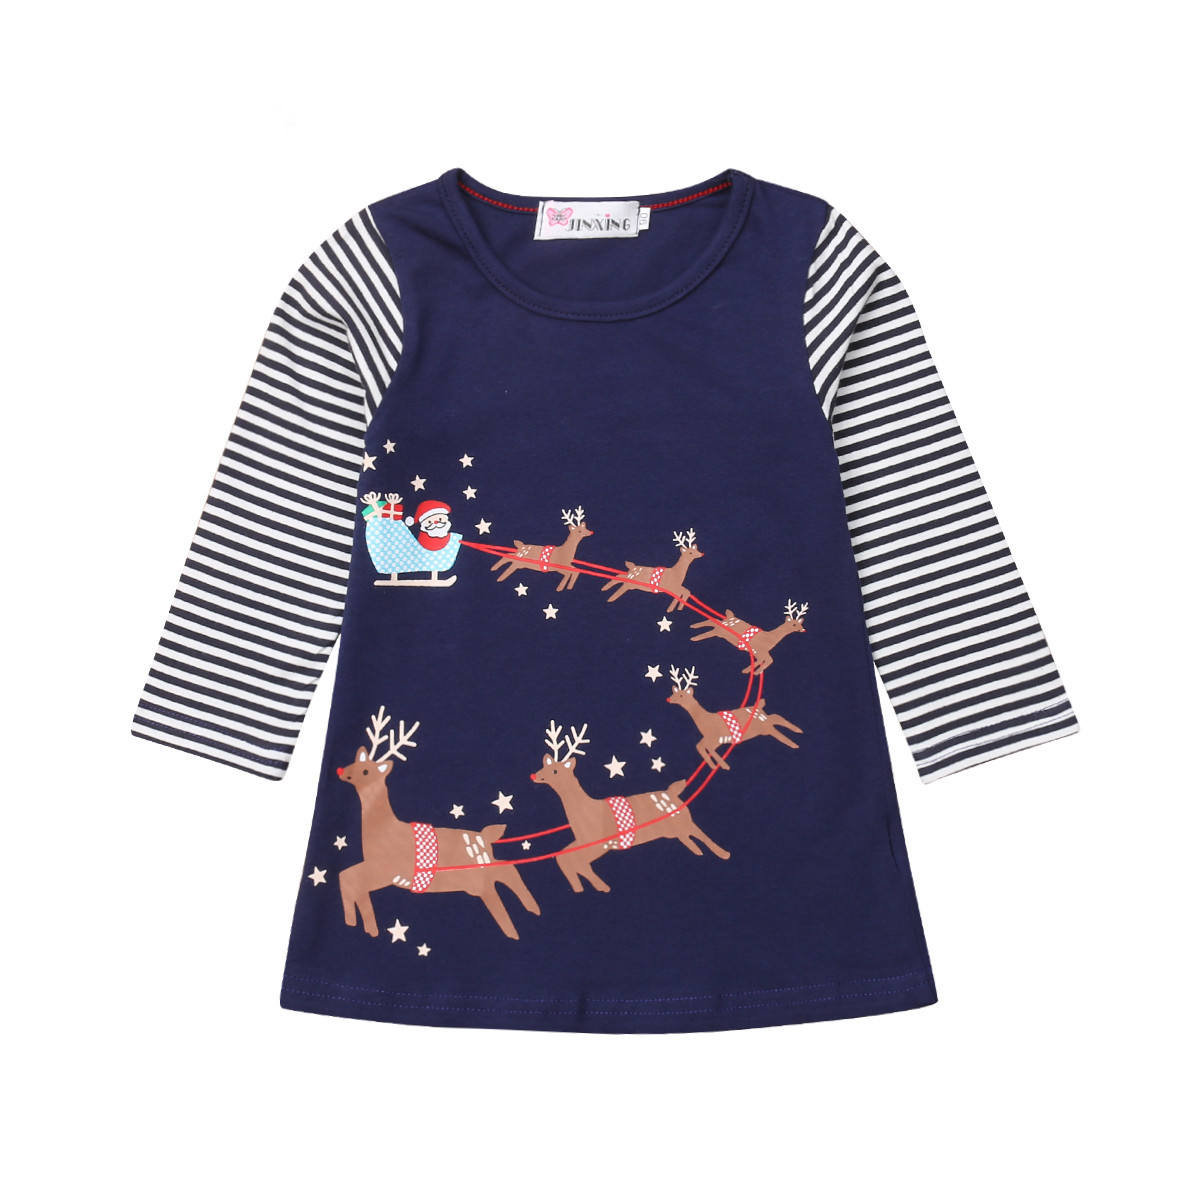 Popular European and American children's clothing wholesale autumn princess dress girl long sleeve printed dress children's clot